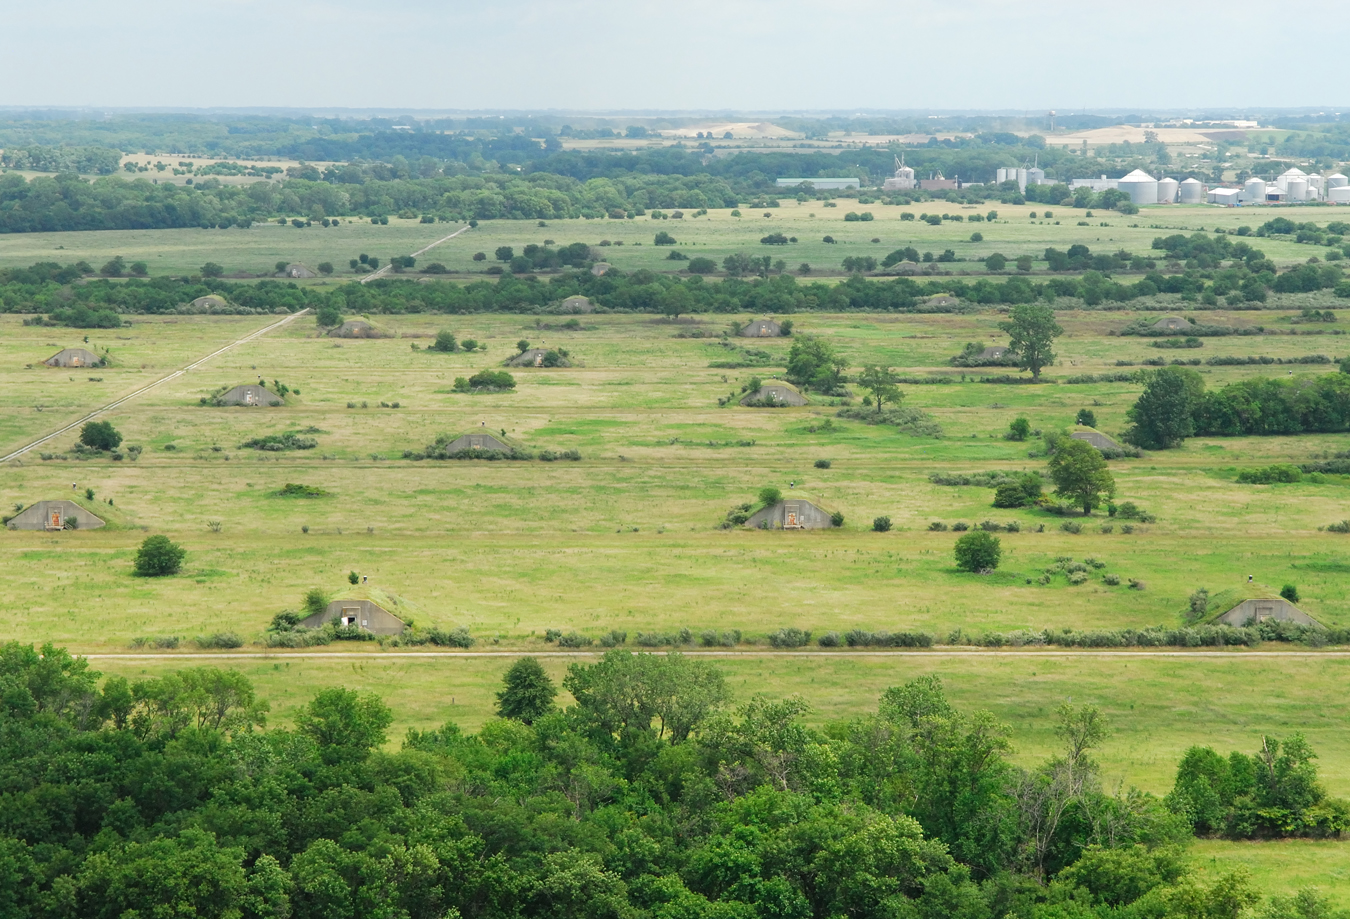 An aerial view of a portion of Midewin National Tallgrass Prairie that will be restored under the new seven-year project, including former arsenal ammunition bunkers. Old bunkers will be removed by the Forest Service over the course of this project.